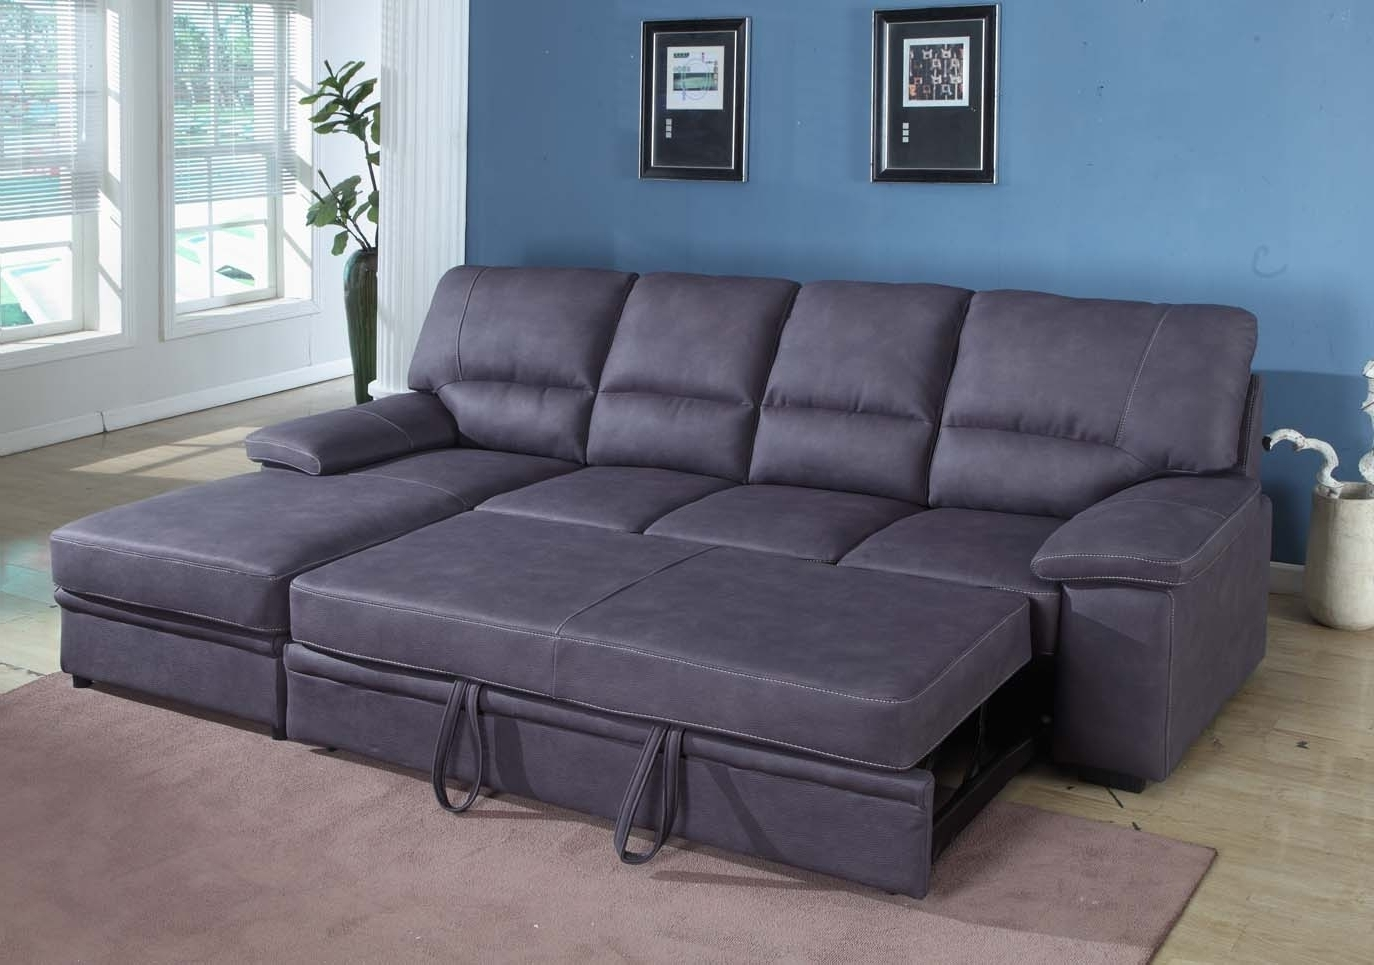 Most Current Ottoman Sleeper Sofa, Make A Chaise With Storage Ottoman Chaise Inside Sofas With Chaise And Ottoman (View 7 of 15)